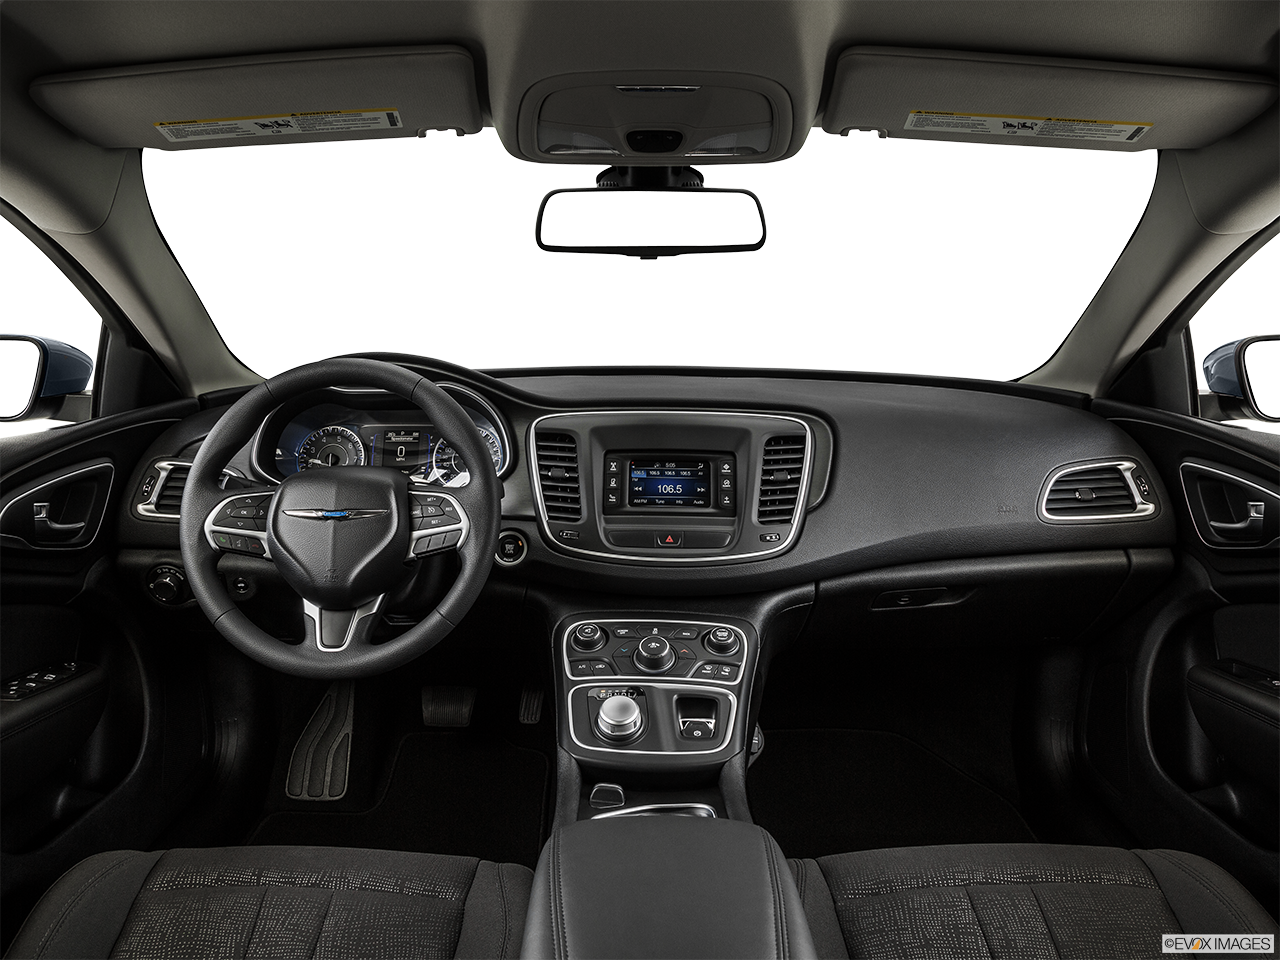 2015 chrysler 200 interior. interior view of 2015 chrysler 200 in la mesa